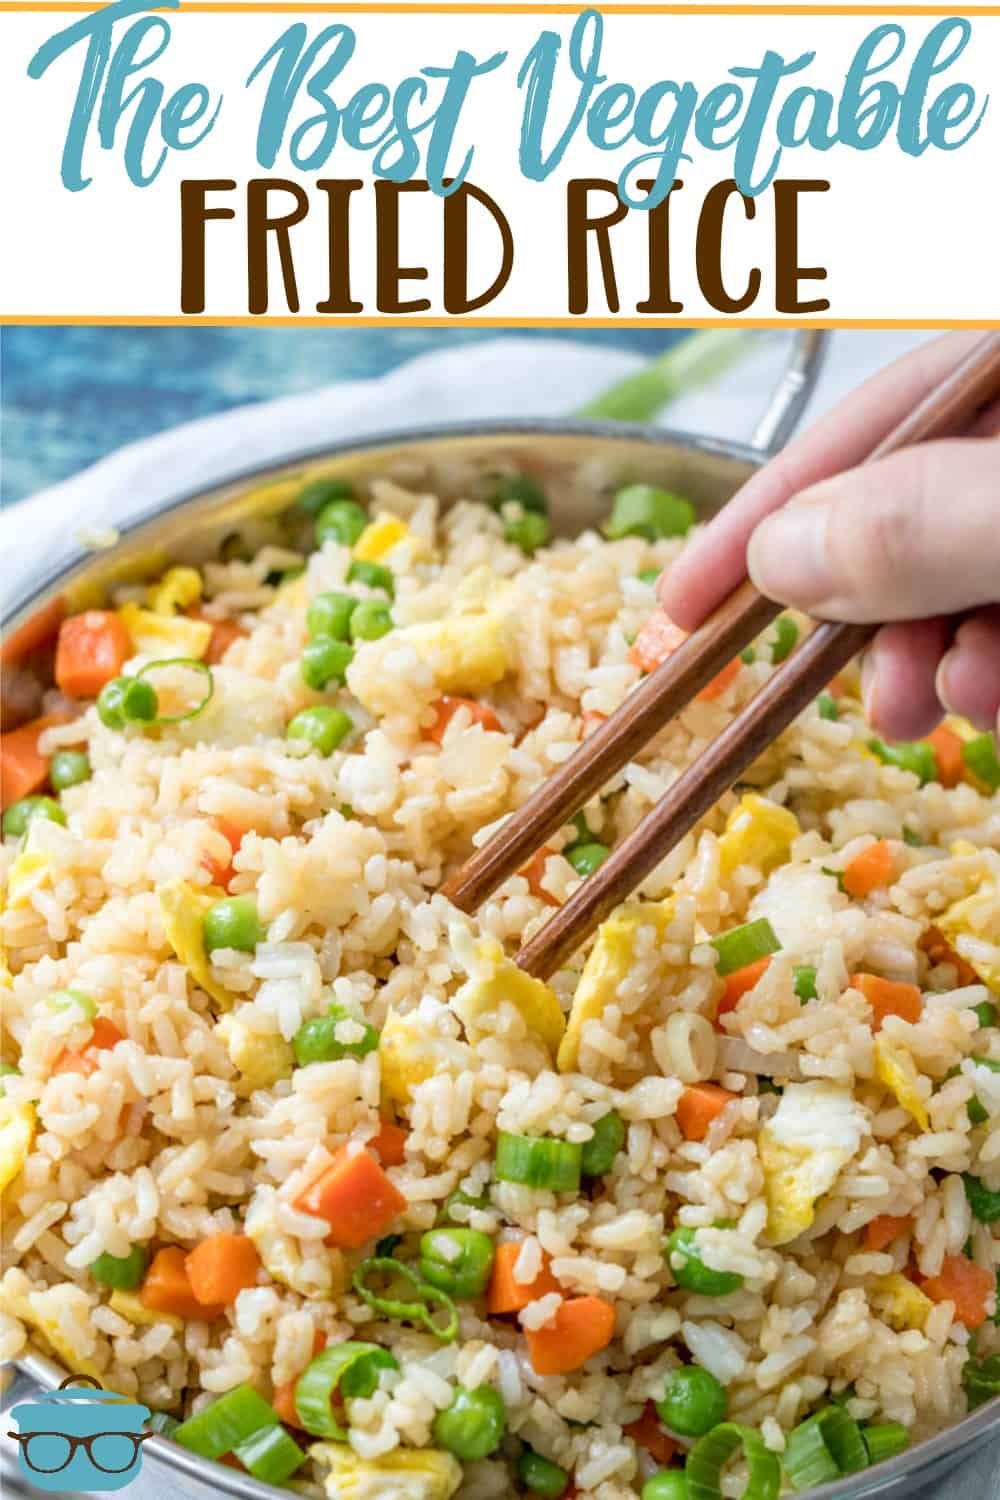 Make Chinese restaurant-style fried rice at home! It whips up in minutes. Chicken, shrimp or pork can be added to make it a filling meal!